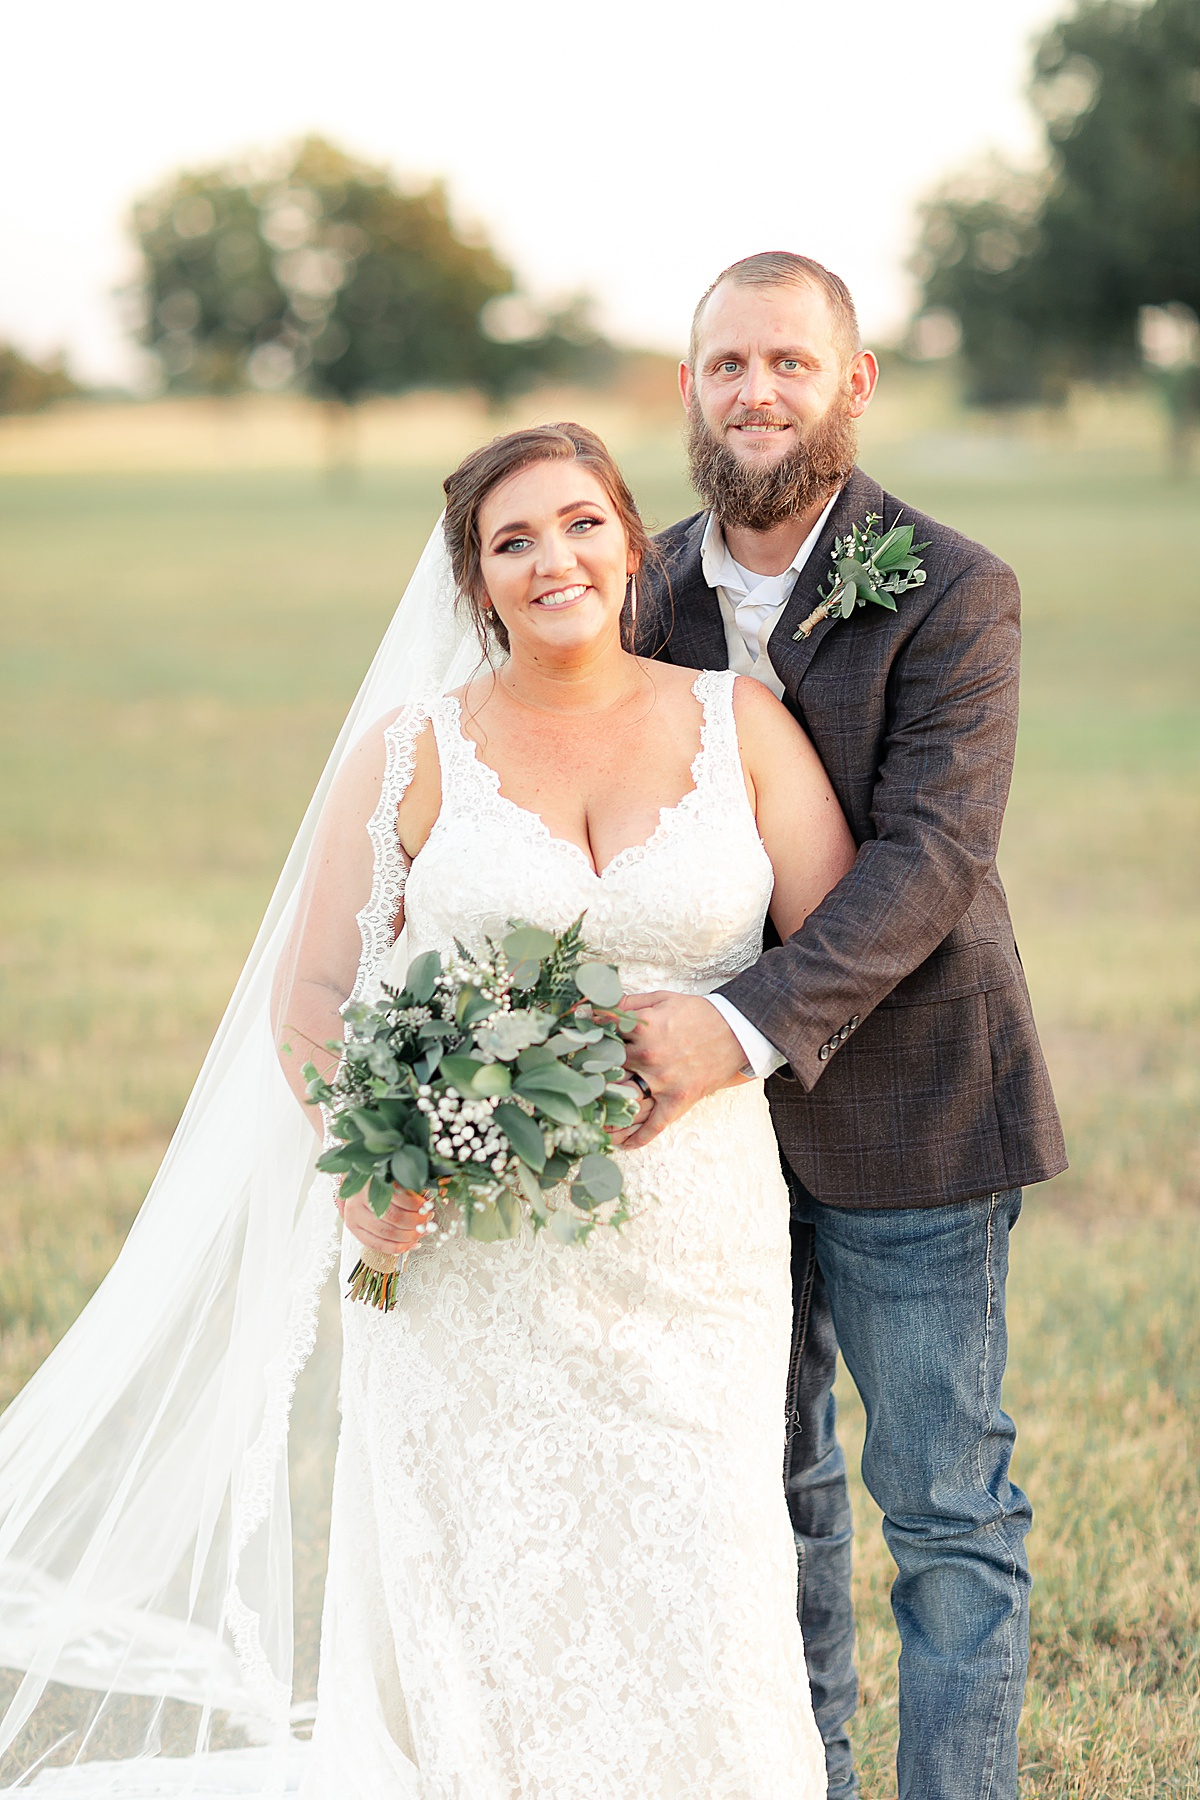 Rustic-Texas-Wedding-Hollow-Creek-Ranch-Carly-Barton-Photography_0093.jpg